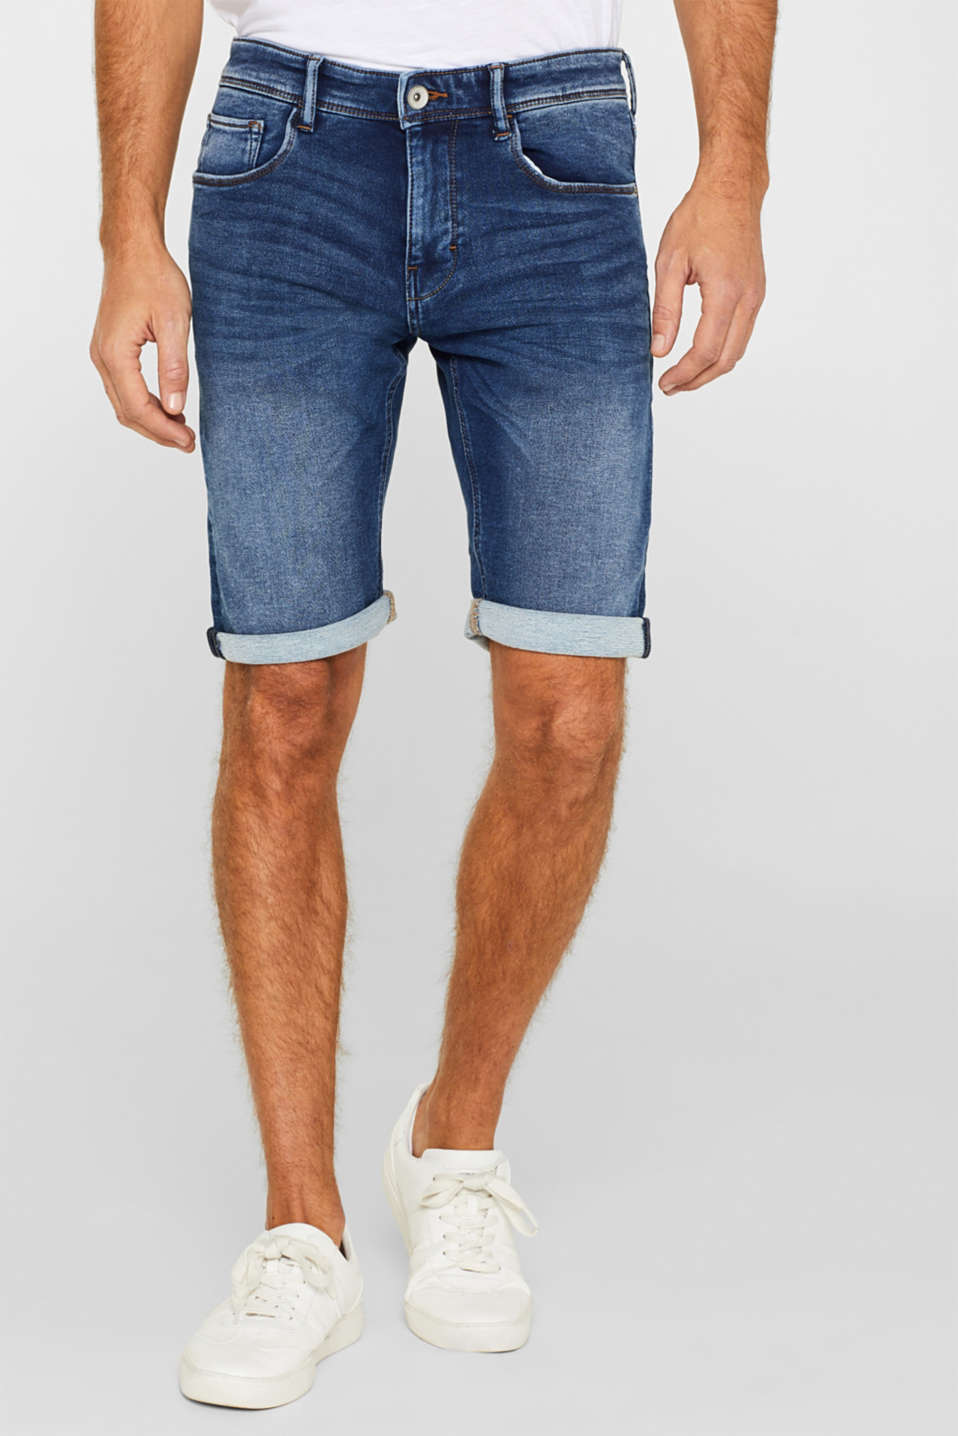 Esprit - Super stretch denim shorts in tracksuit fabric